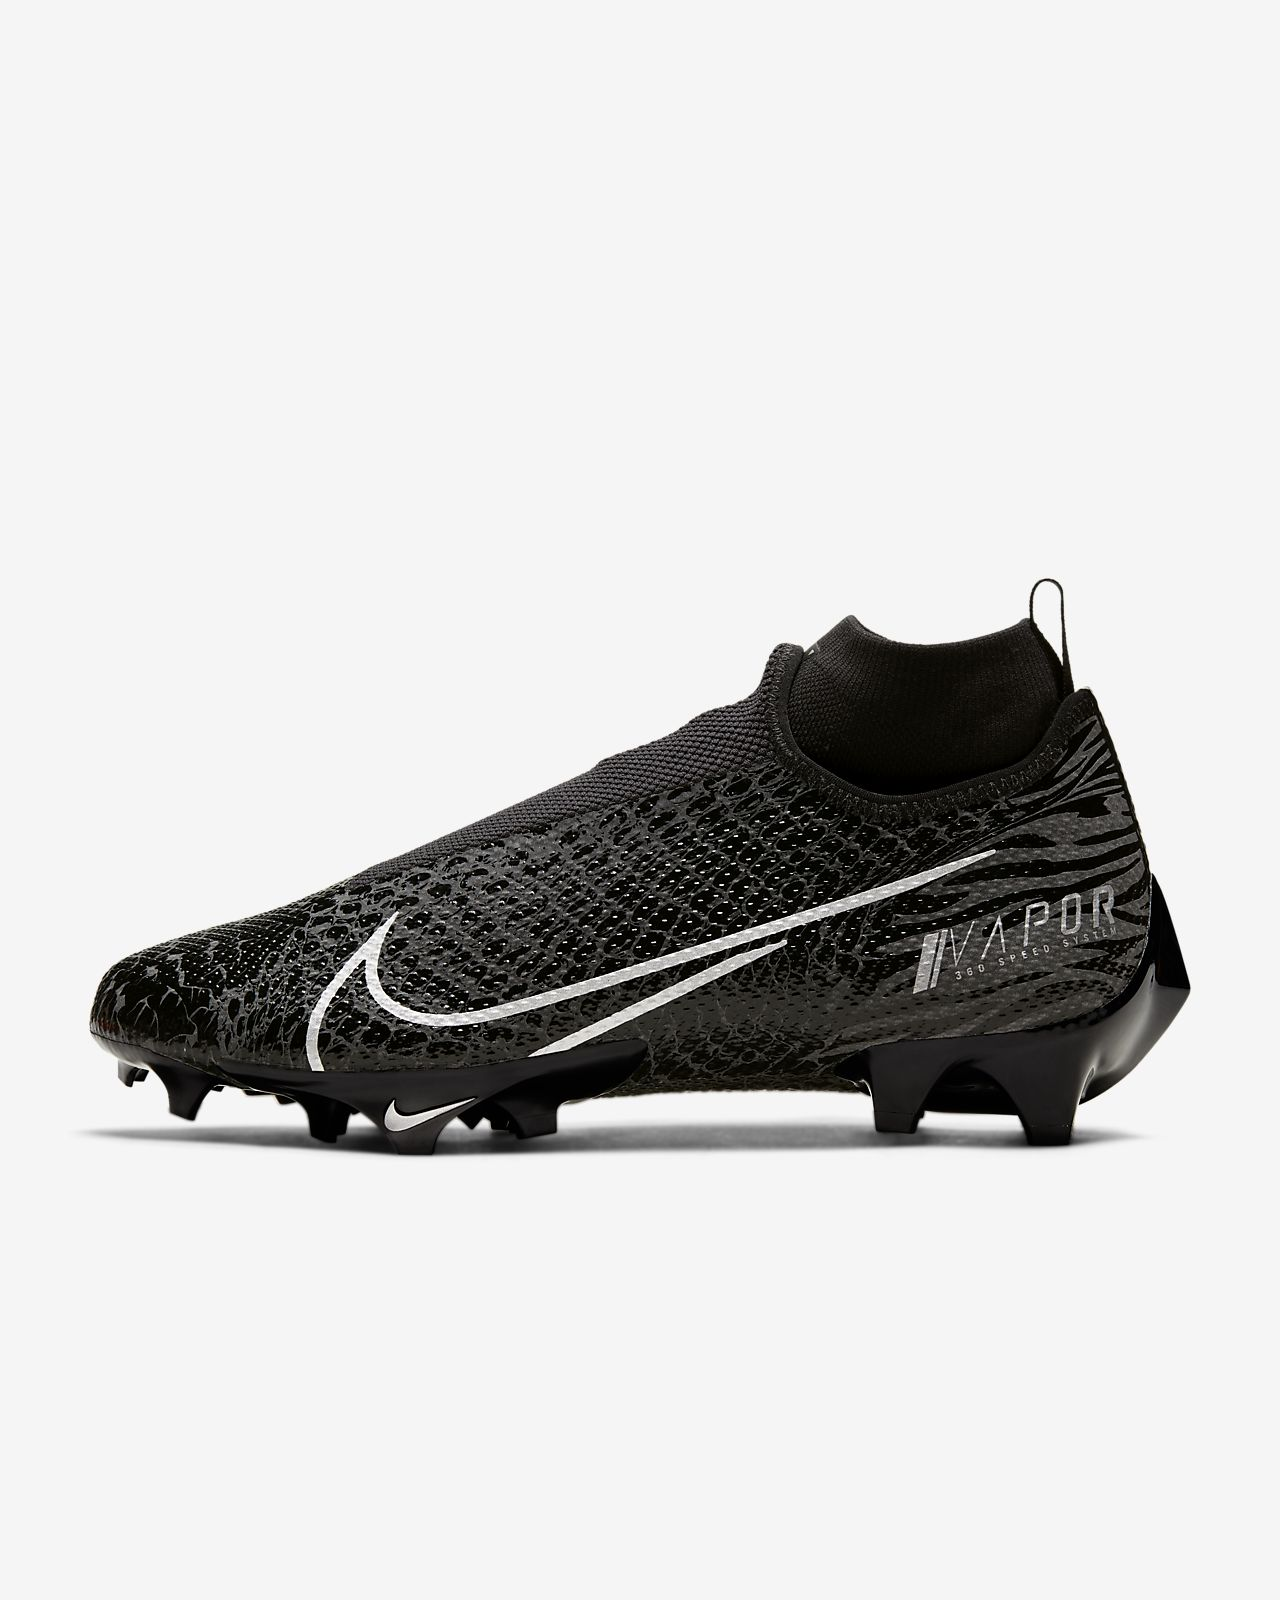 Nike Vapor Edge Pro OBJ Men's Football Cleat